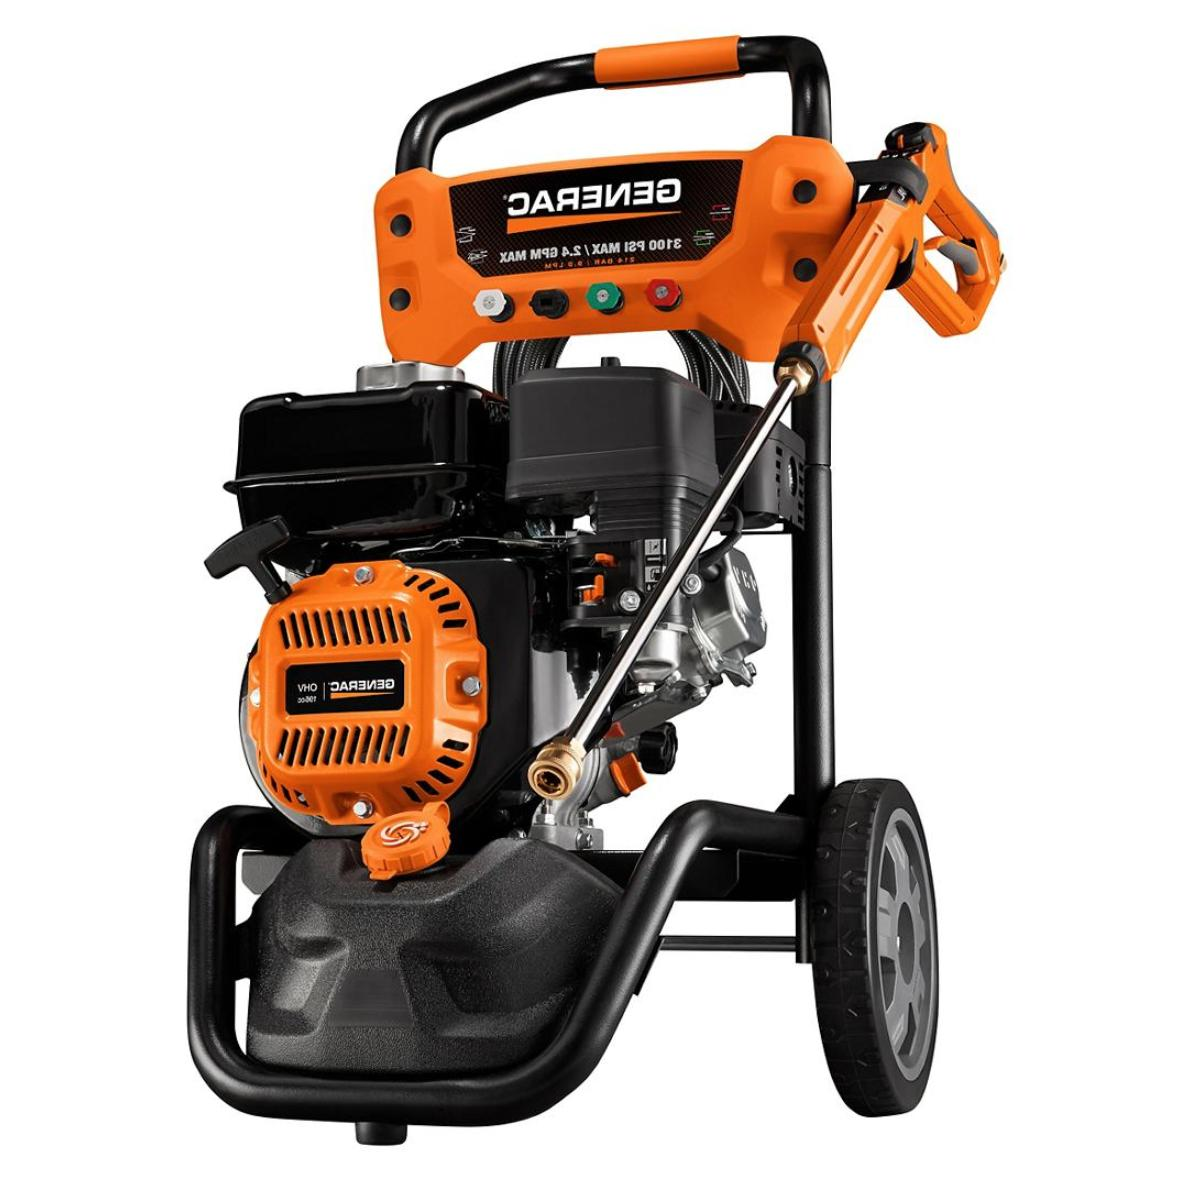 4 gpm residential pressure washer